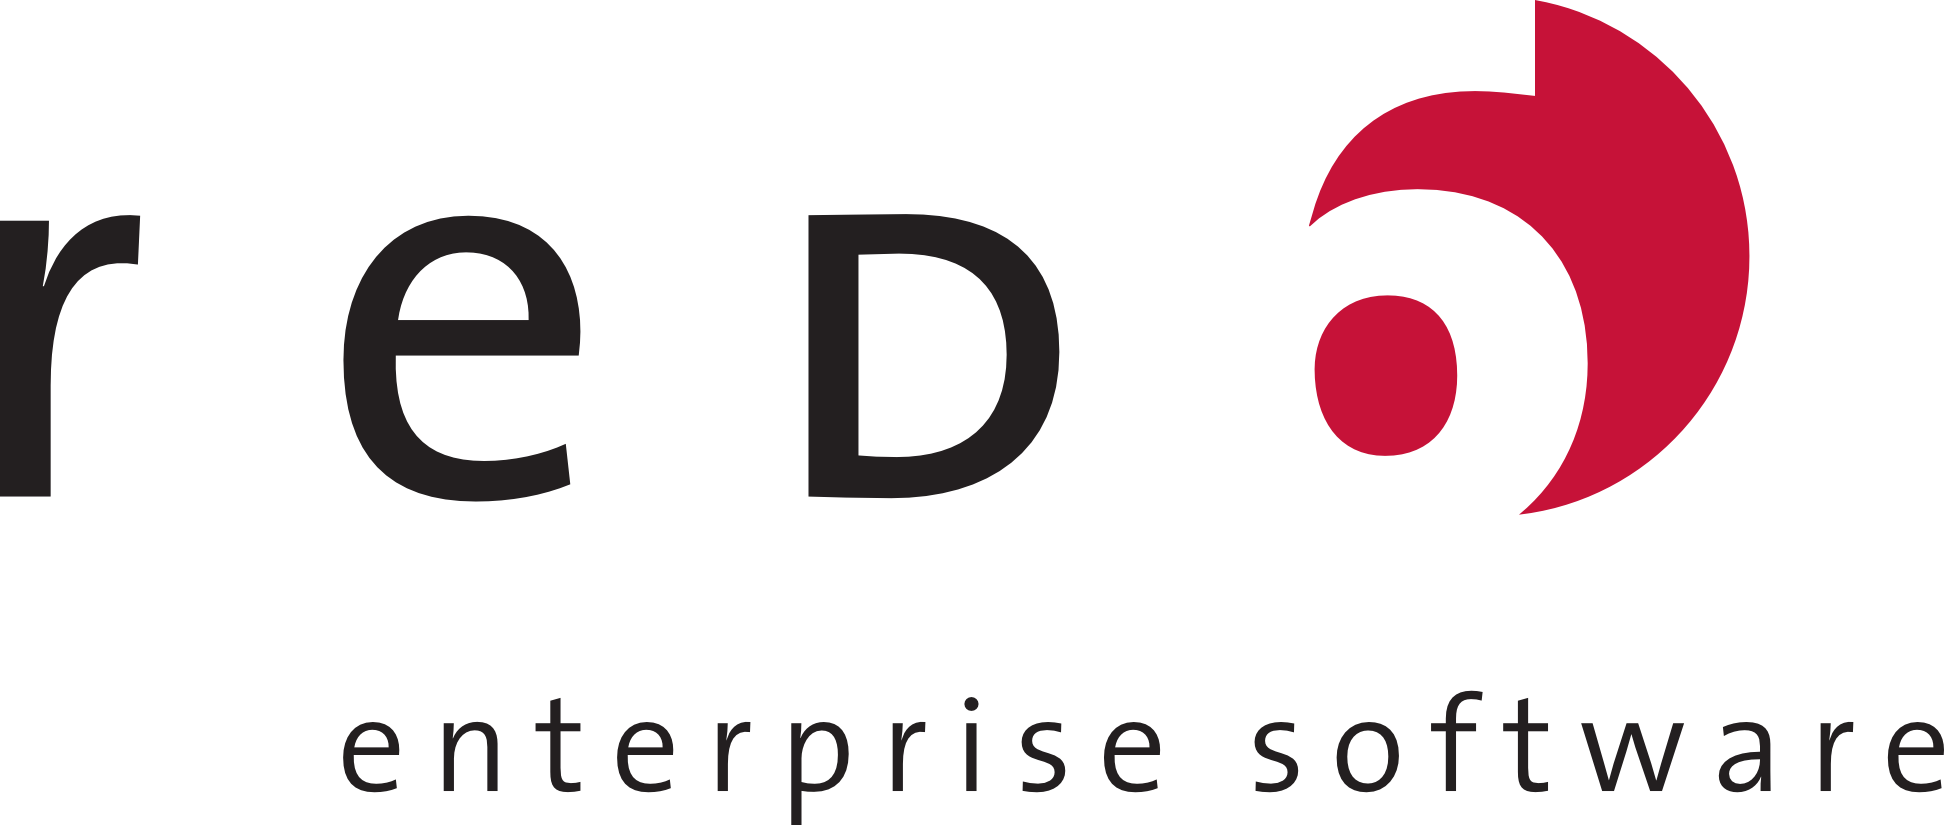 Logo red6 enterprise software GmbH